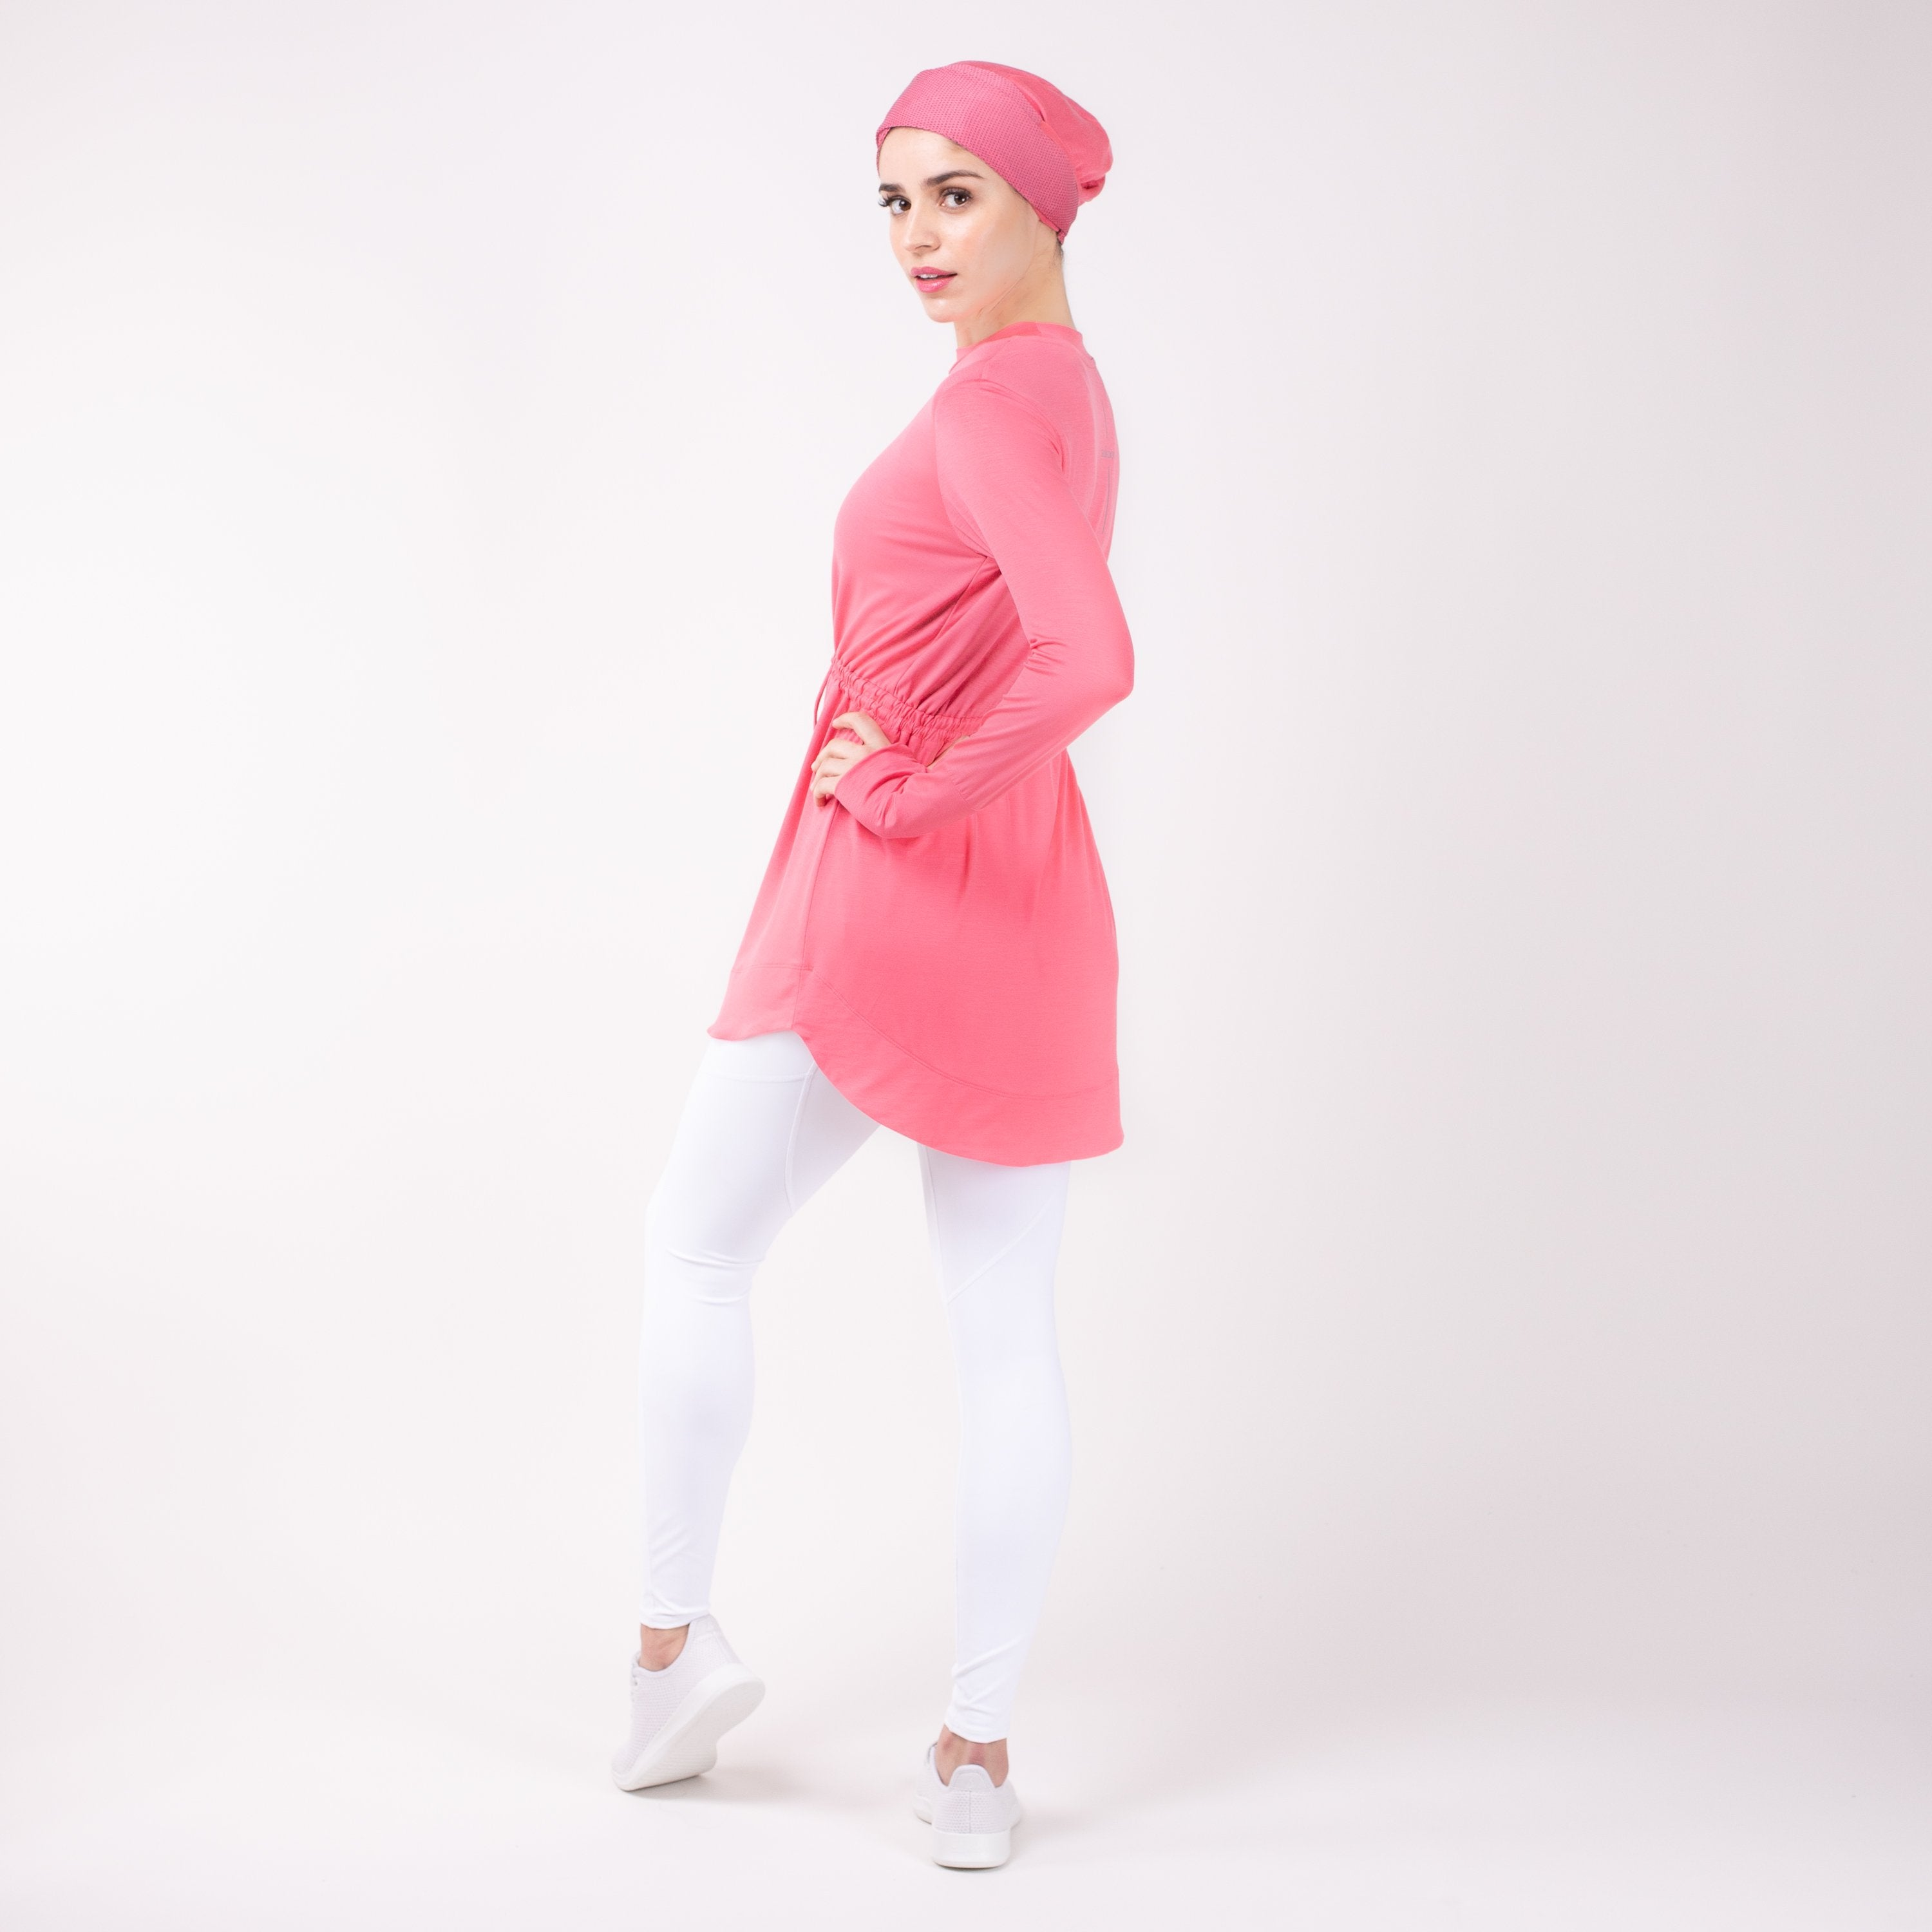 Back of woman standing with one leg bent wearing the modest, berry pink HAWA drawstring tee shirt and white leggings in front of a white back drop.